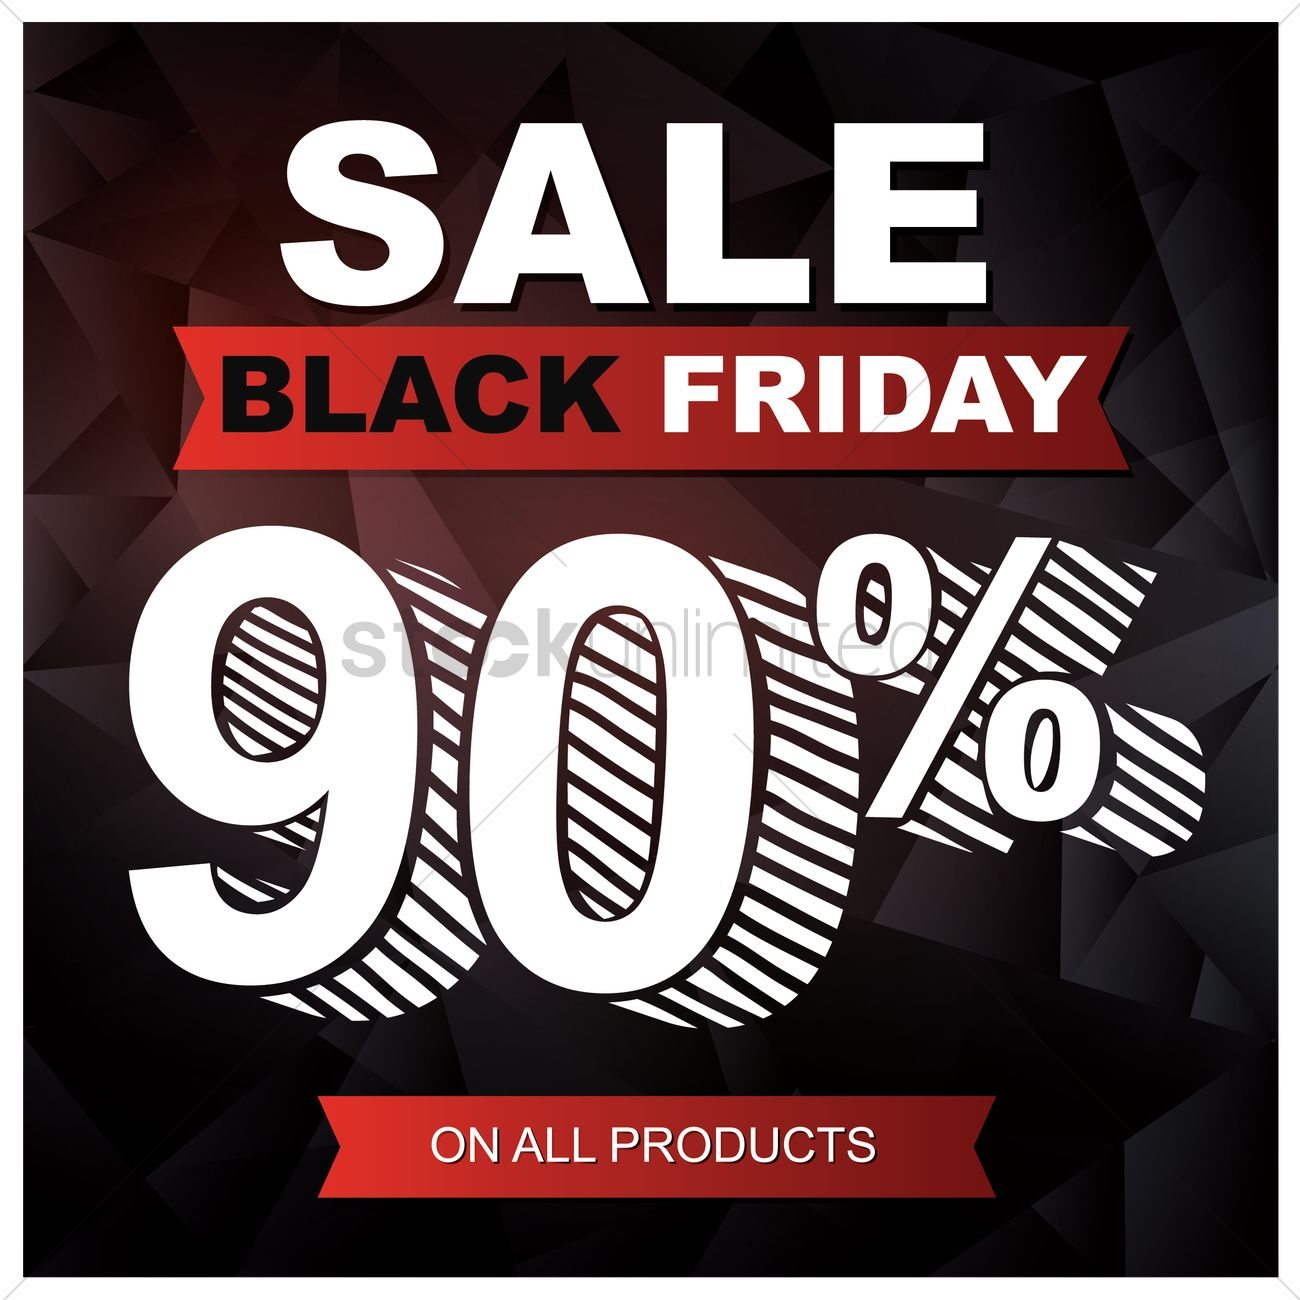 Black friday sale wallpaper Vector Image   1583919 StockUnlimited 1300x1300